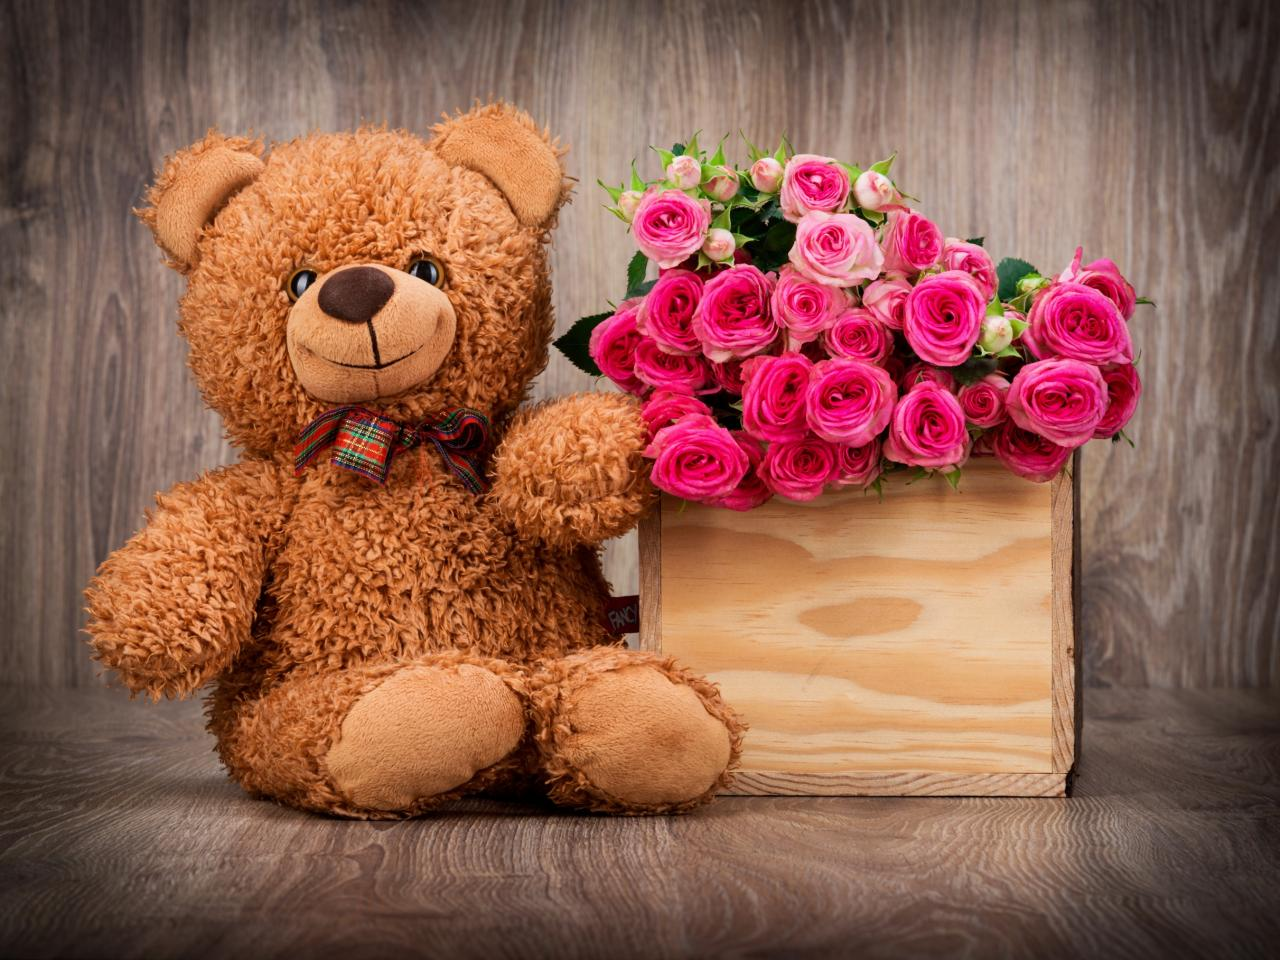 Cute Teddy Bear Wallpaper With Pink Roses In Box Hd